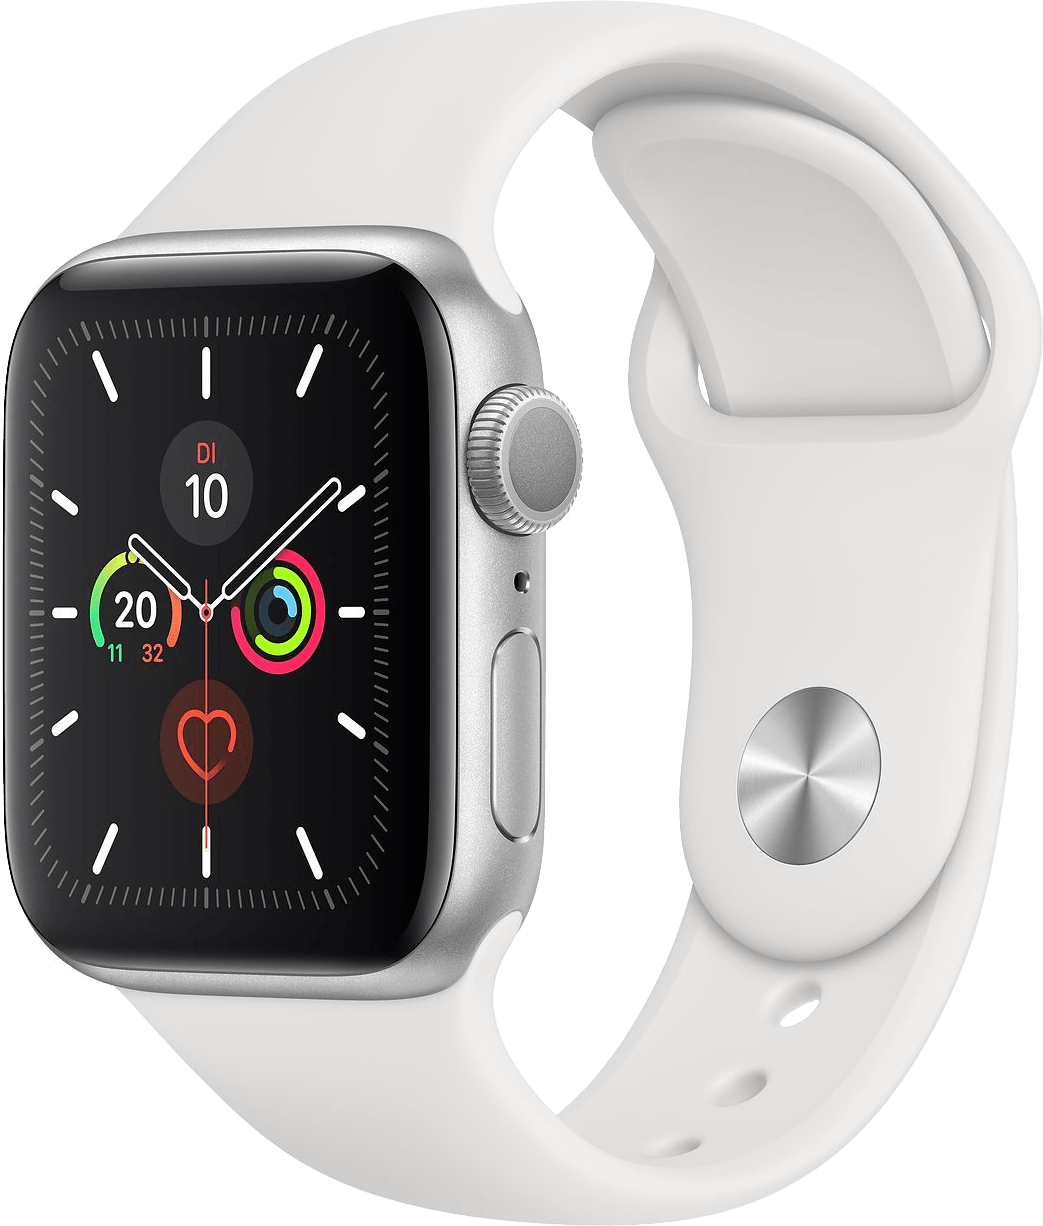 Weiß Apple Watch Series 5 GPS, 44mm.2